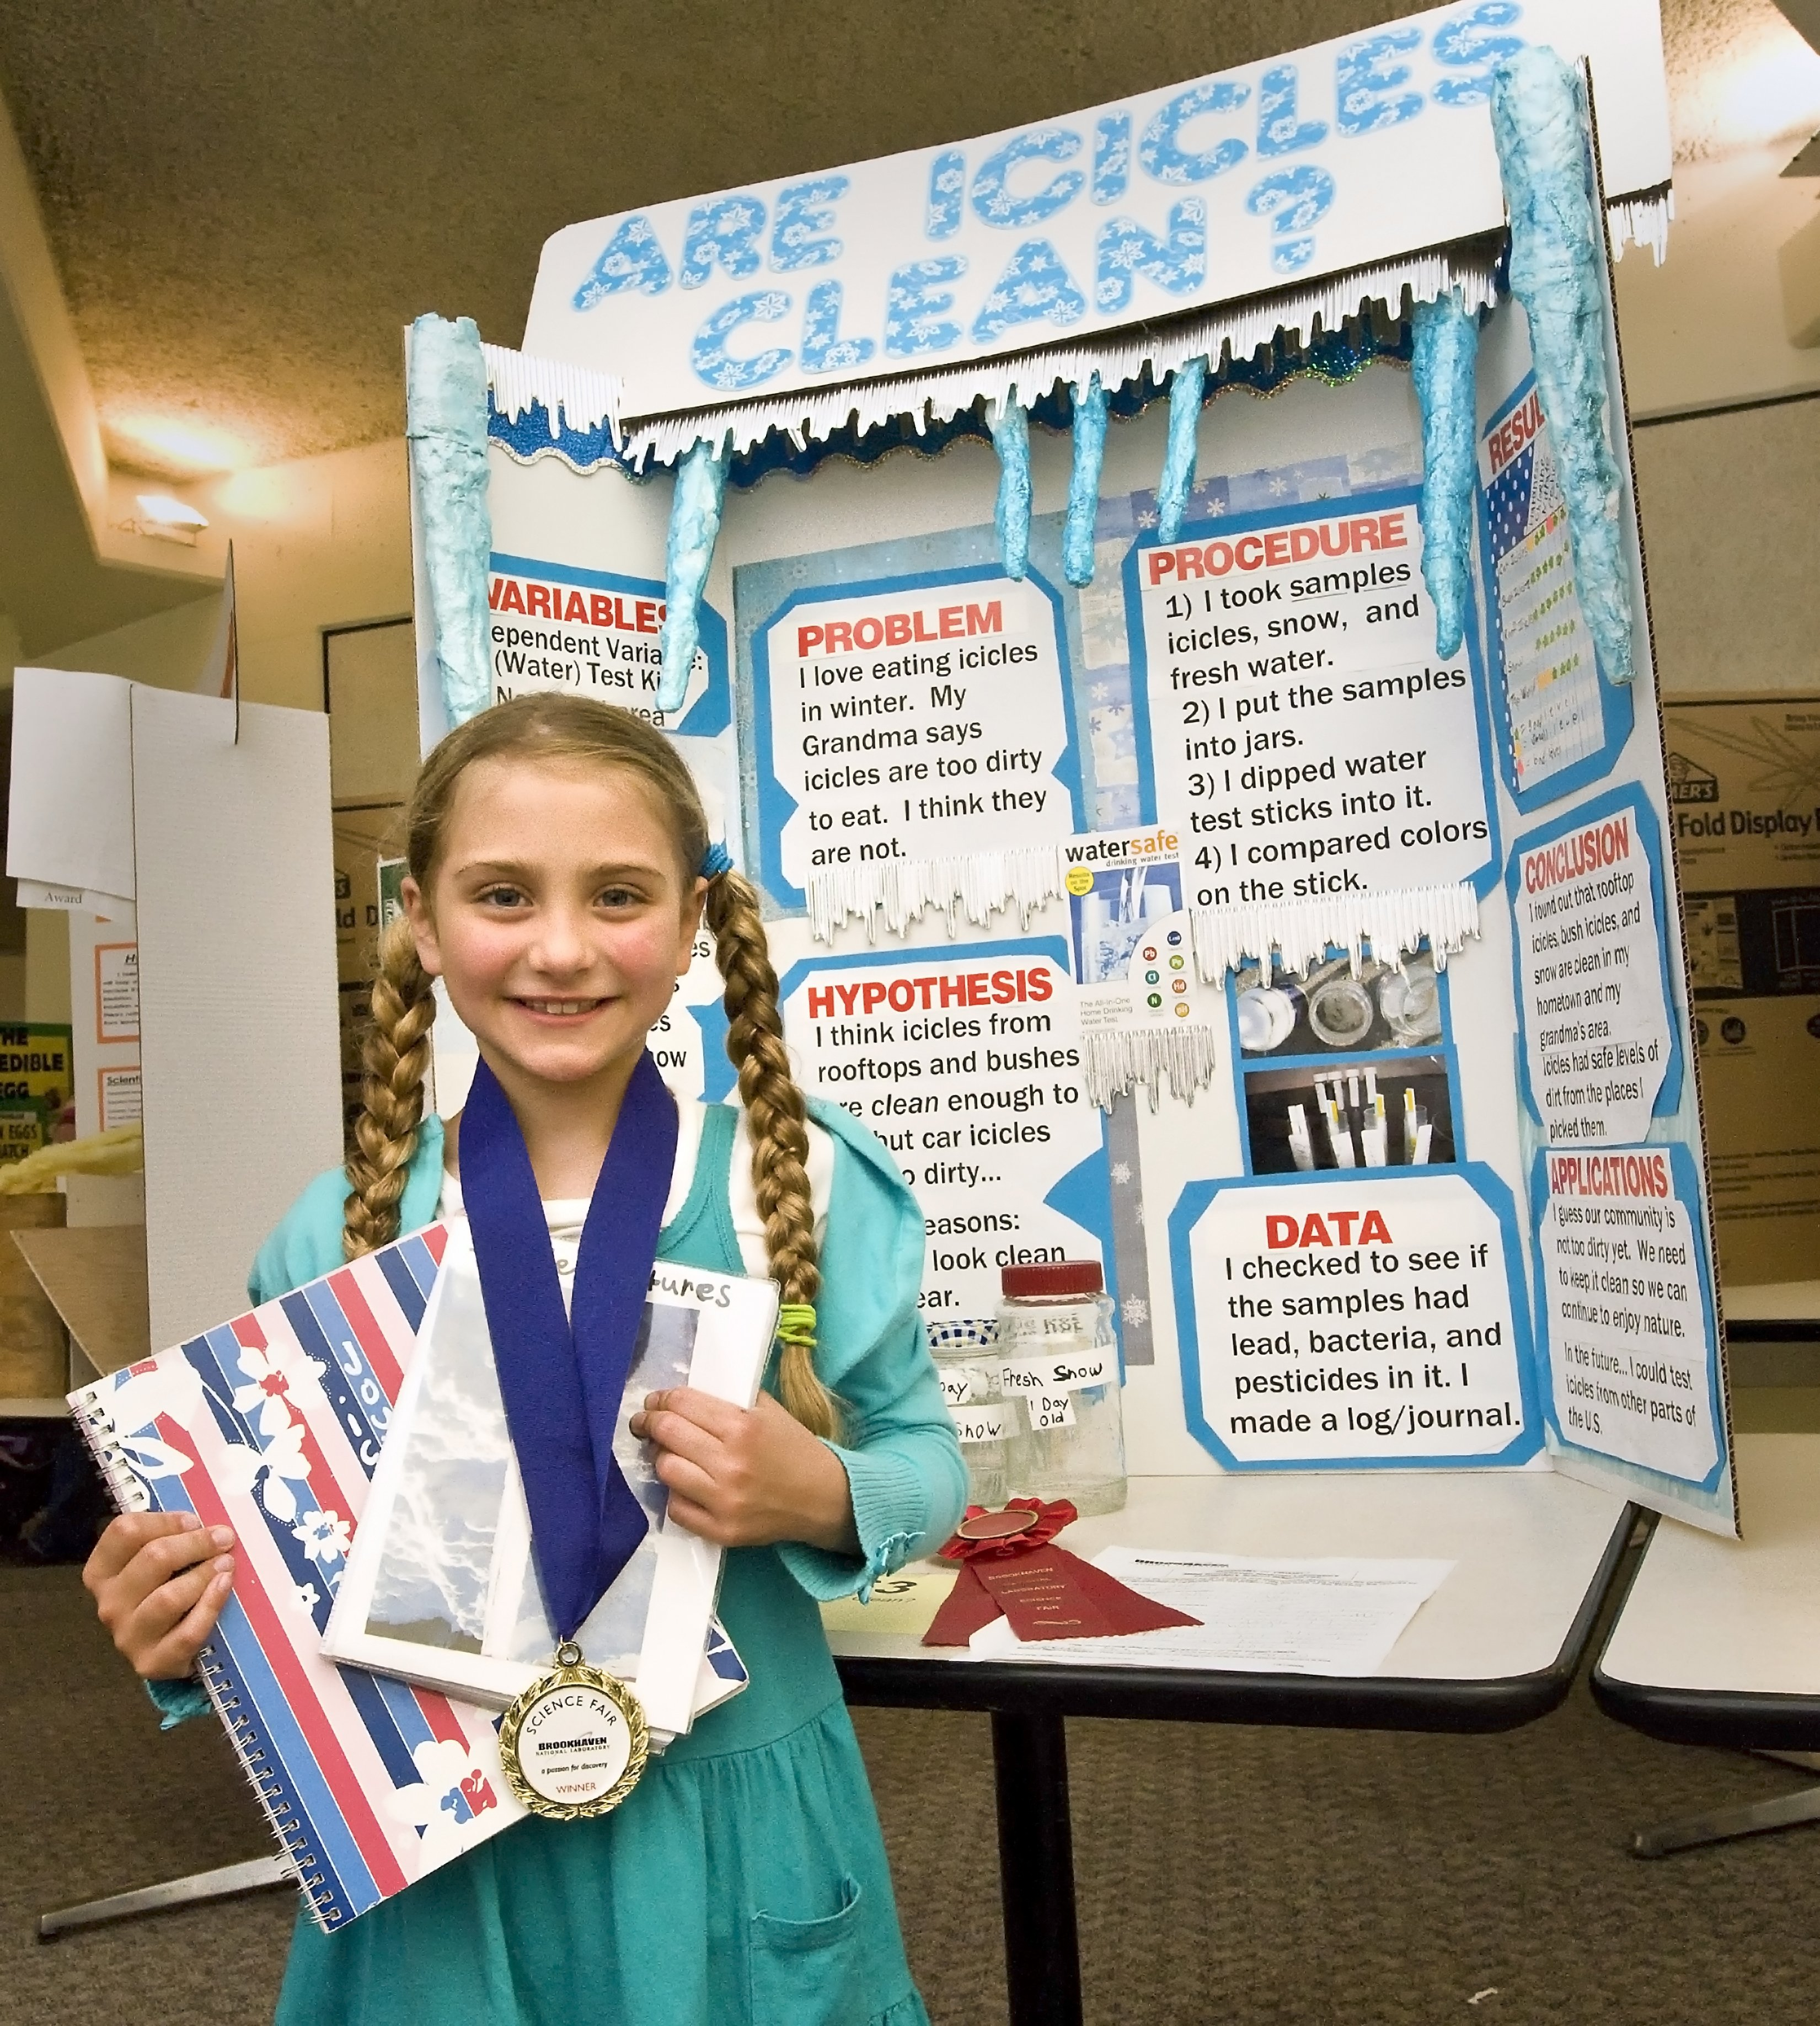 10 Stunning Testable Science Fair Project Ideas from ant control to wind energy winning projects at brookhaven 19 2020